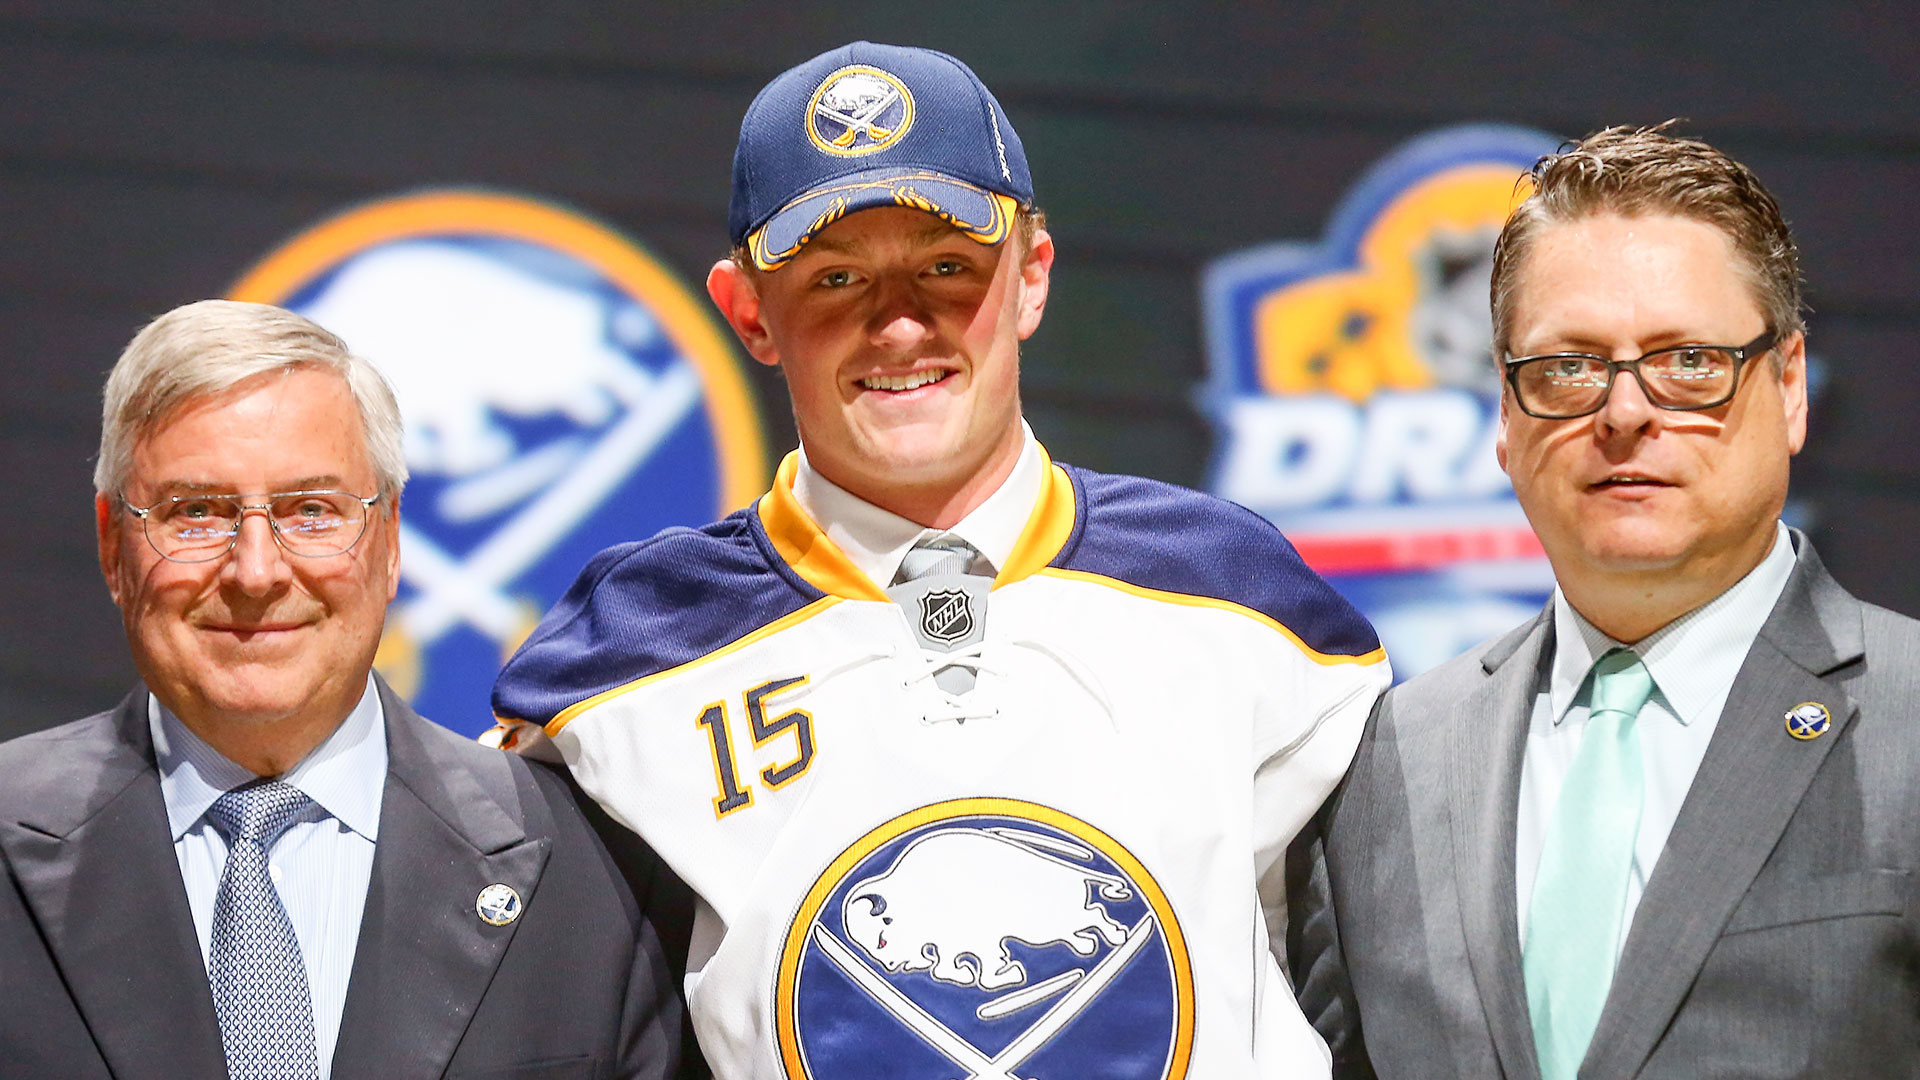 Jack-Eichel-062615-GETTY-FTR.jpg